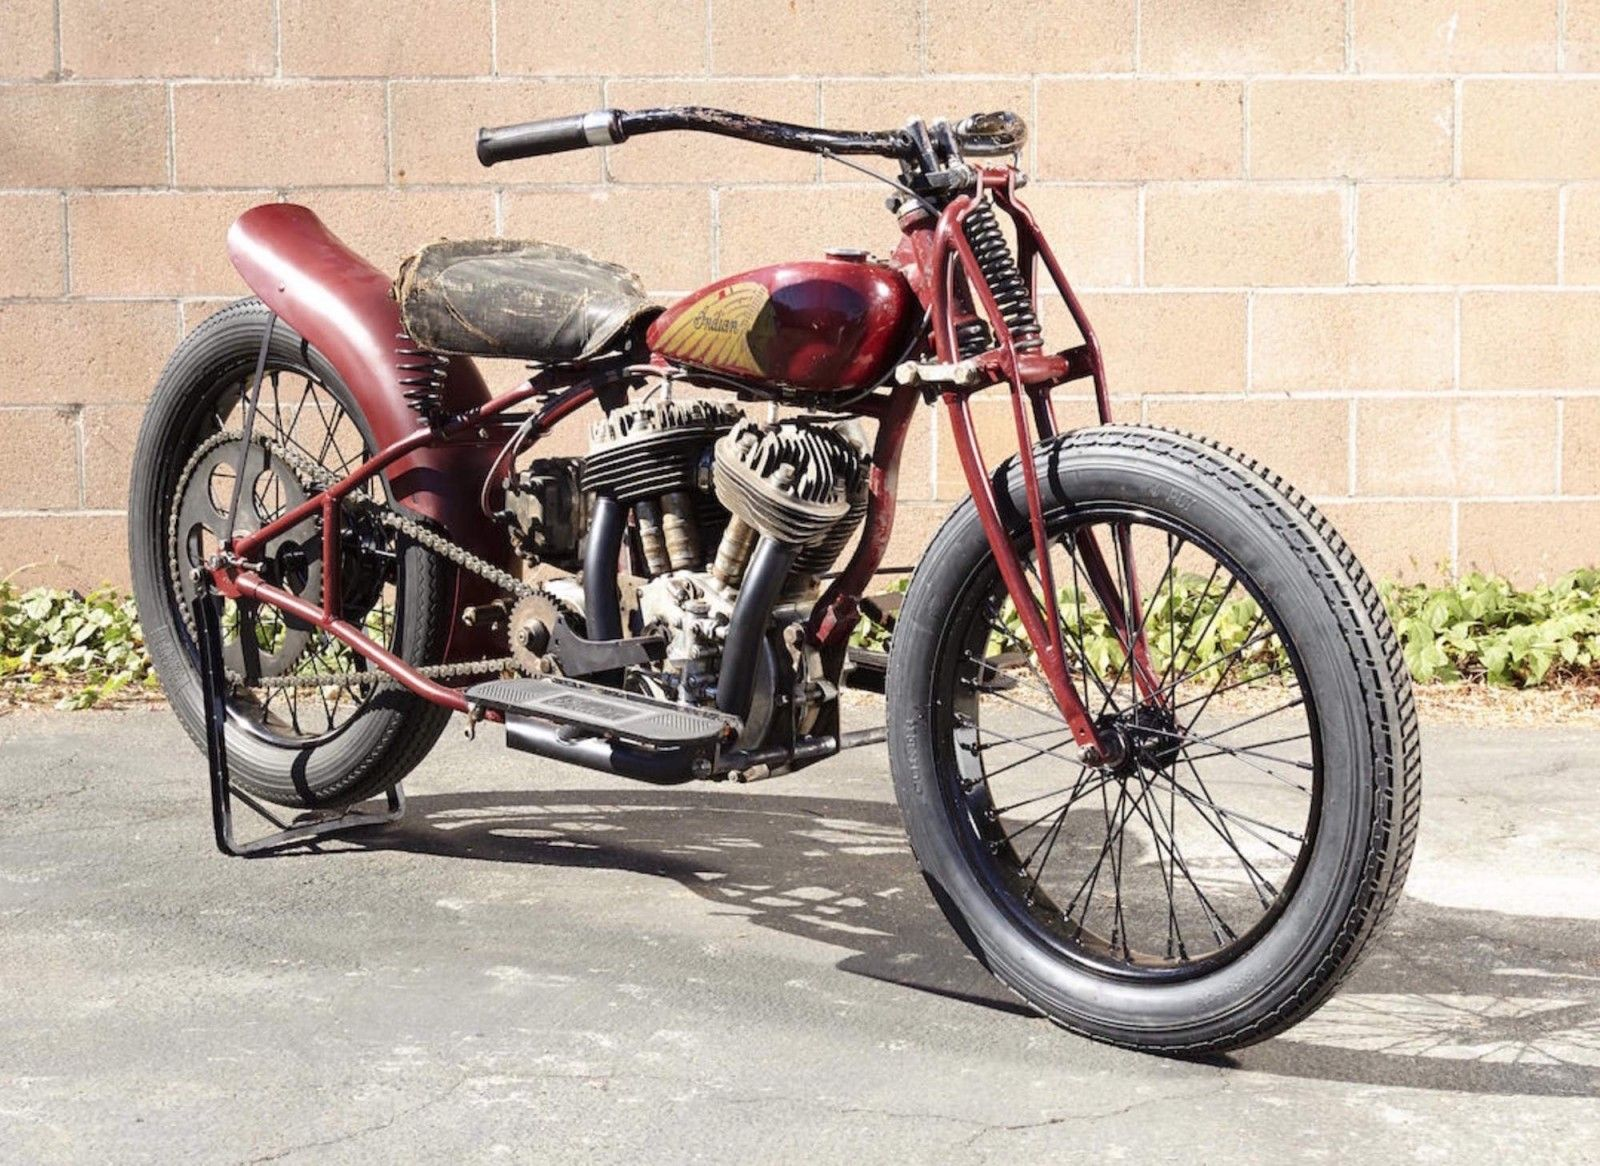 1939 Indian Scout Factory Hill Climber Indian Scout Vintage Indian Motorcycles Cool Bikes